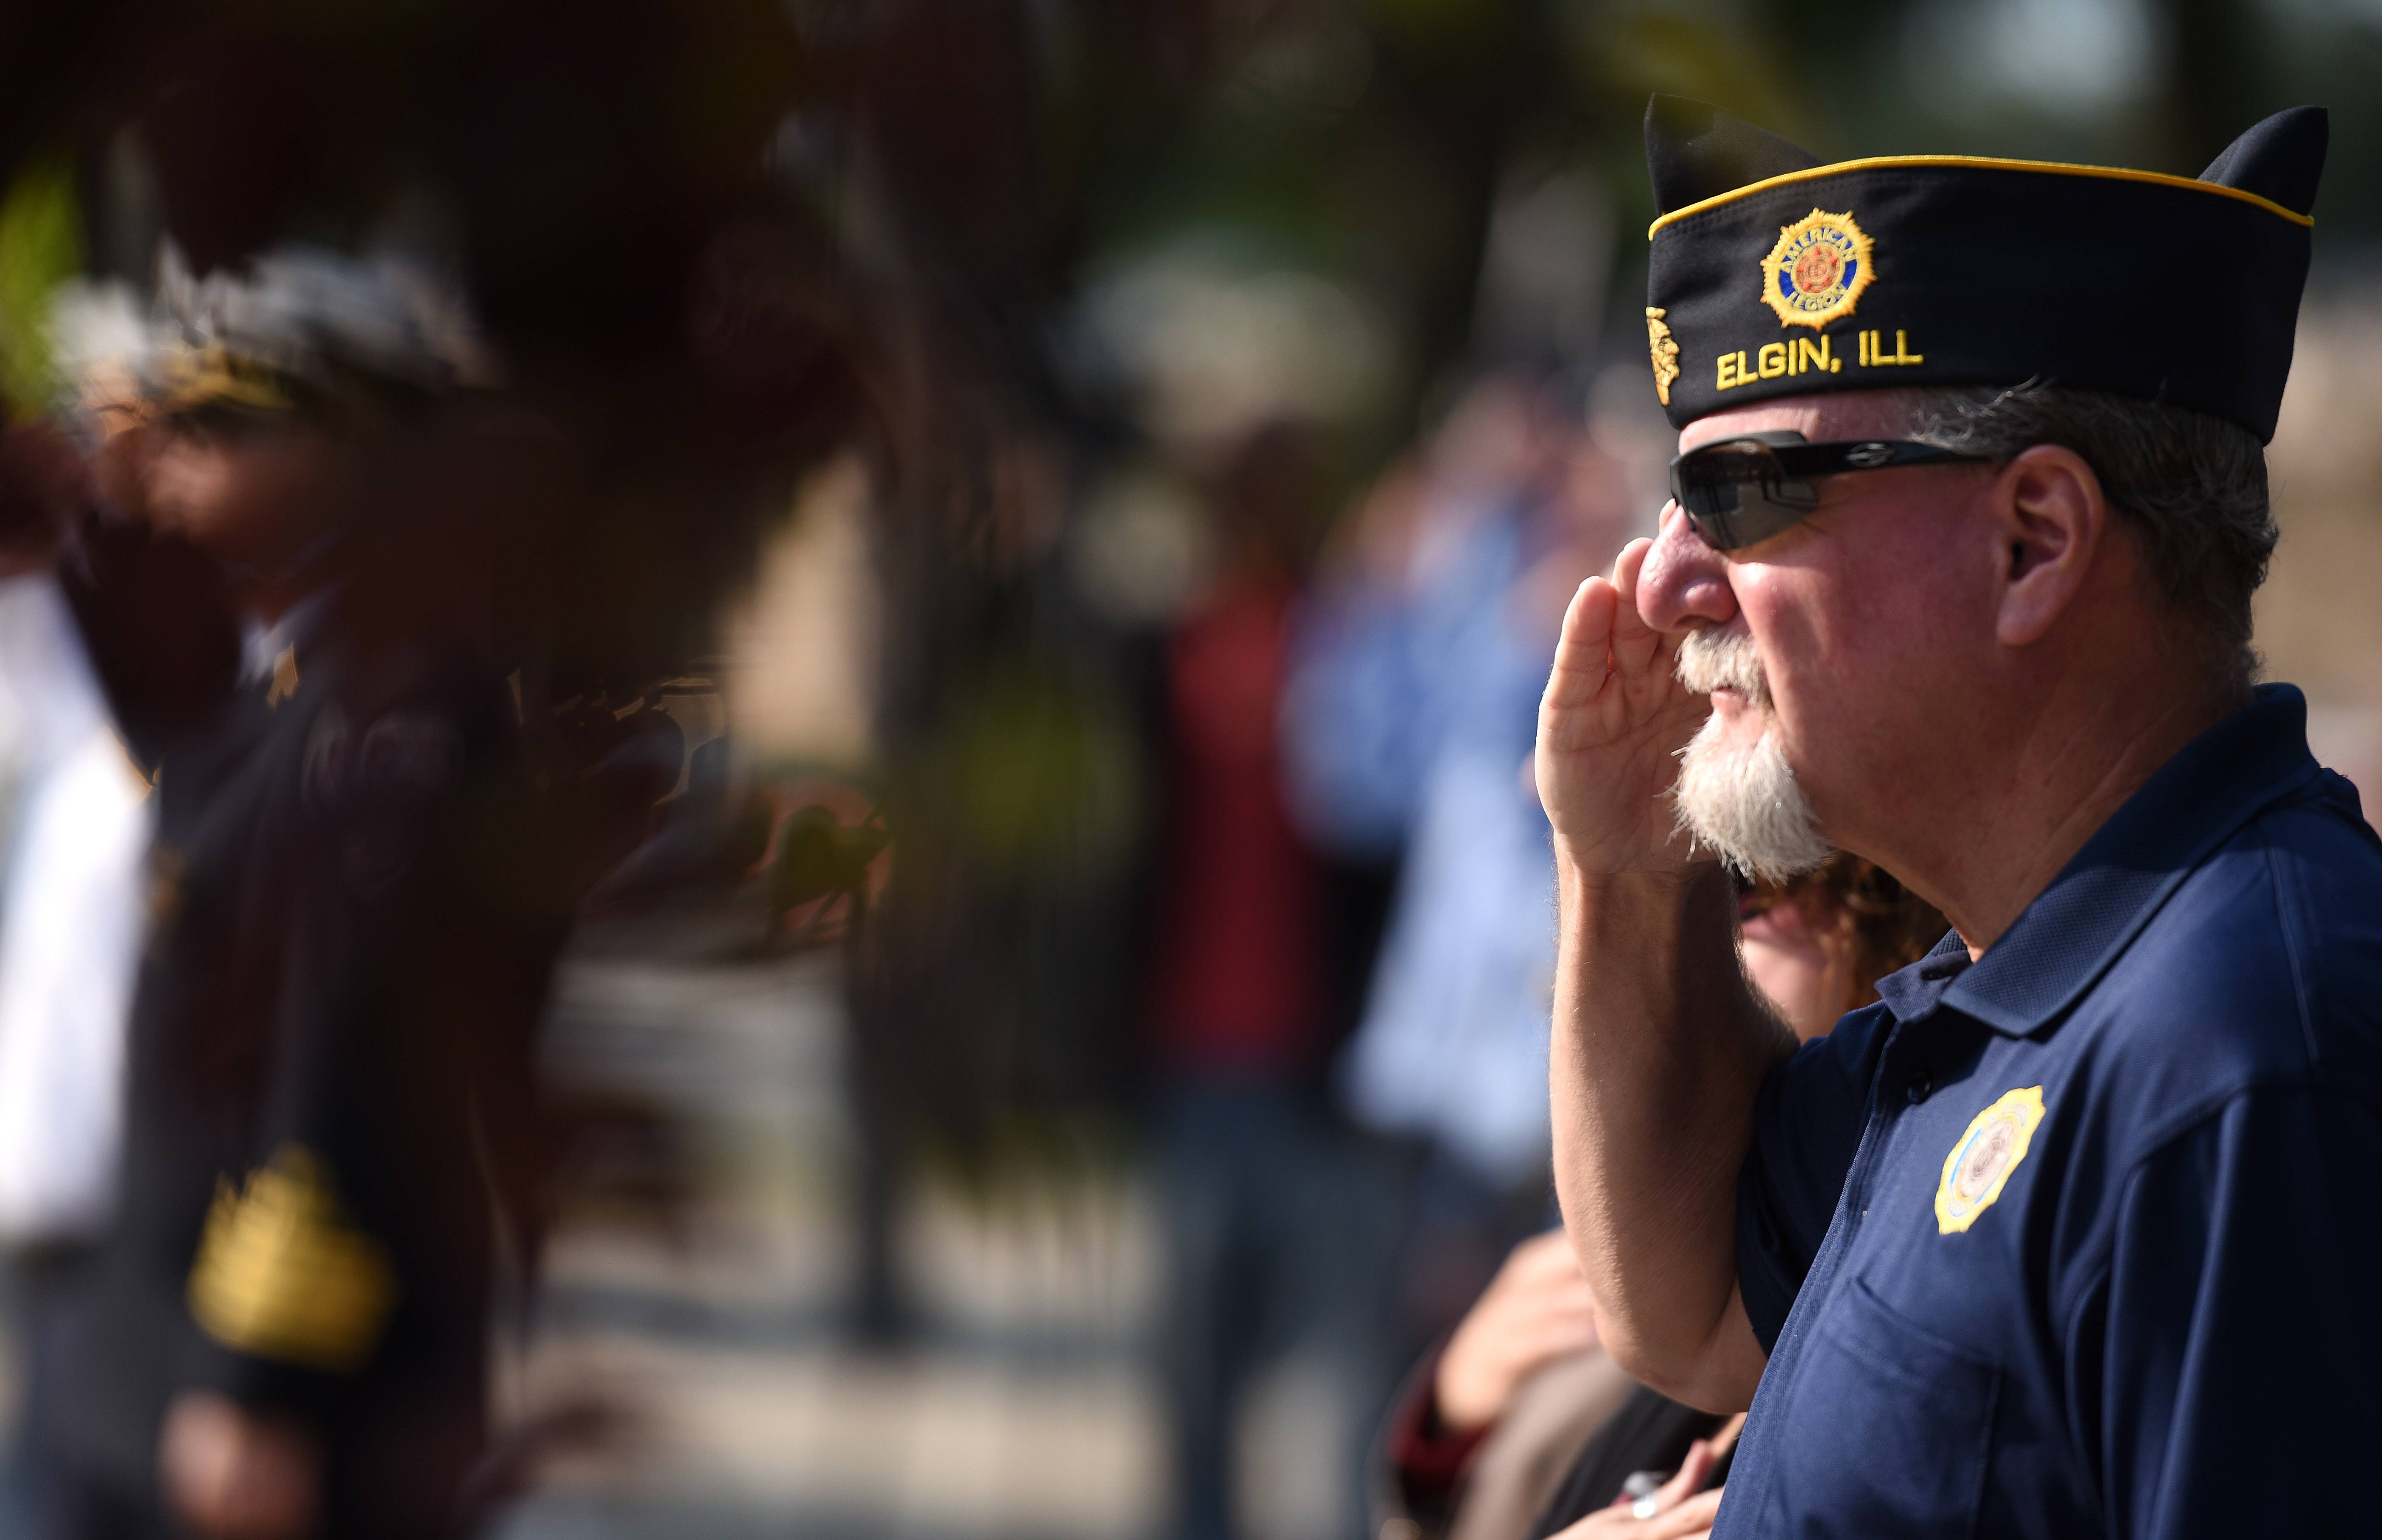 Craig Essick of Elgin salutes as the colors are posted during Elgin's Sept. 11 remembrance Monday. Essick, an Army veteran, is commander of Elgin American Legion Post 57.